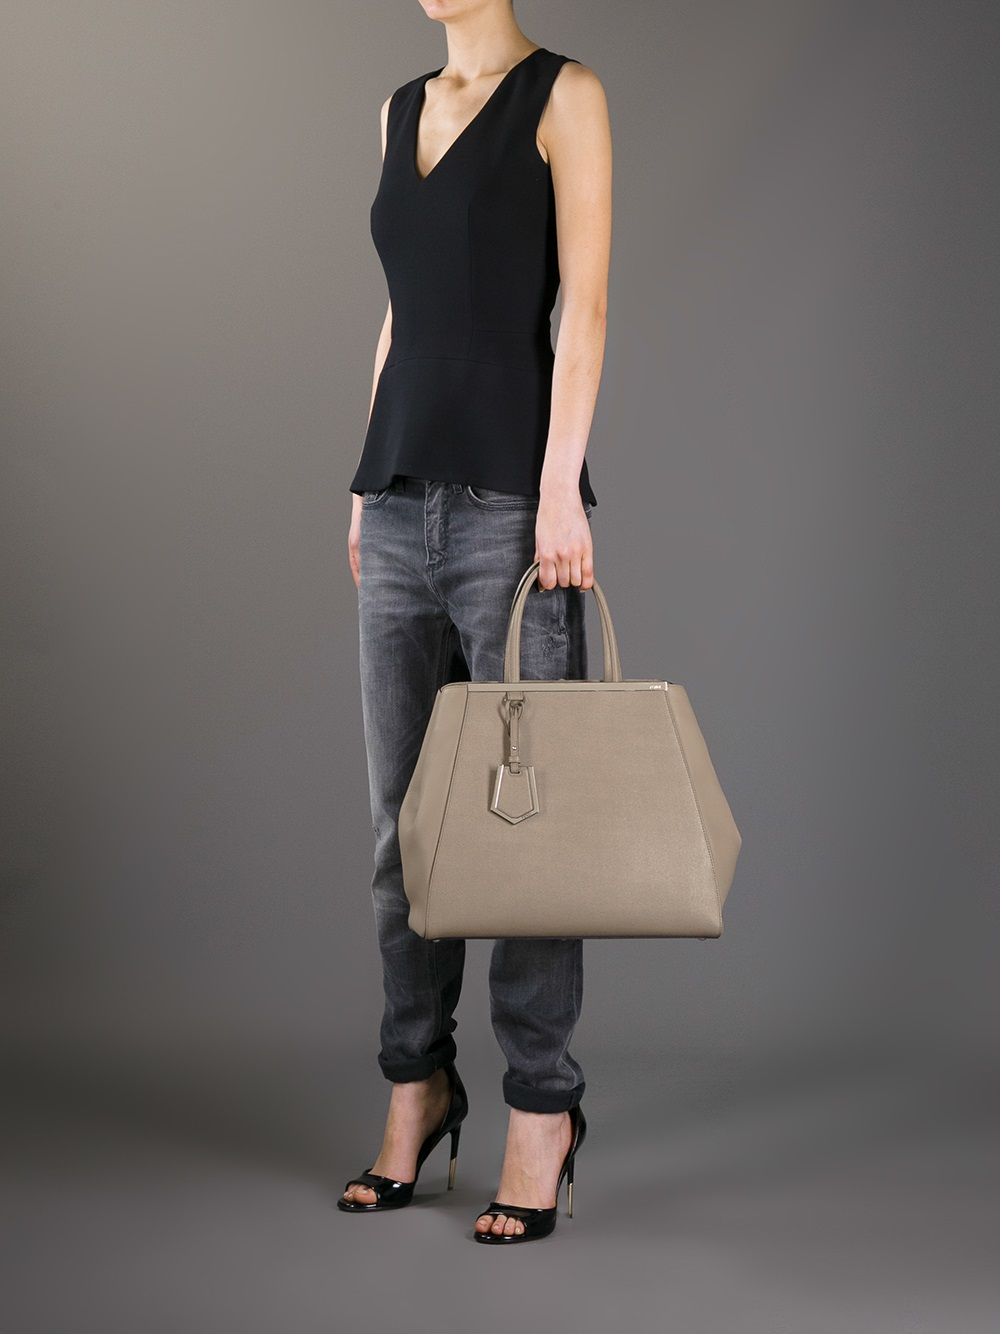 8185494fa1ff ... italy fendi 2jours large tote in brown lyst 7cec8 c545e